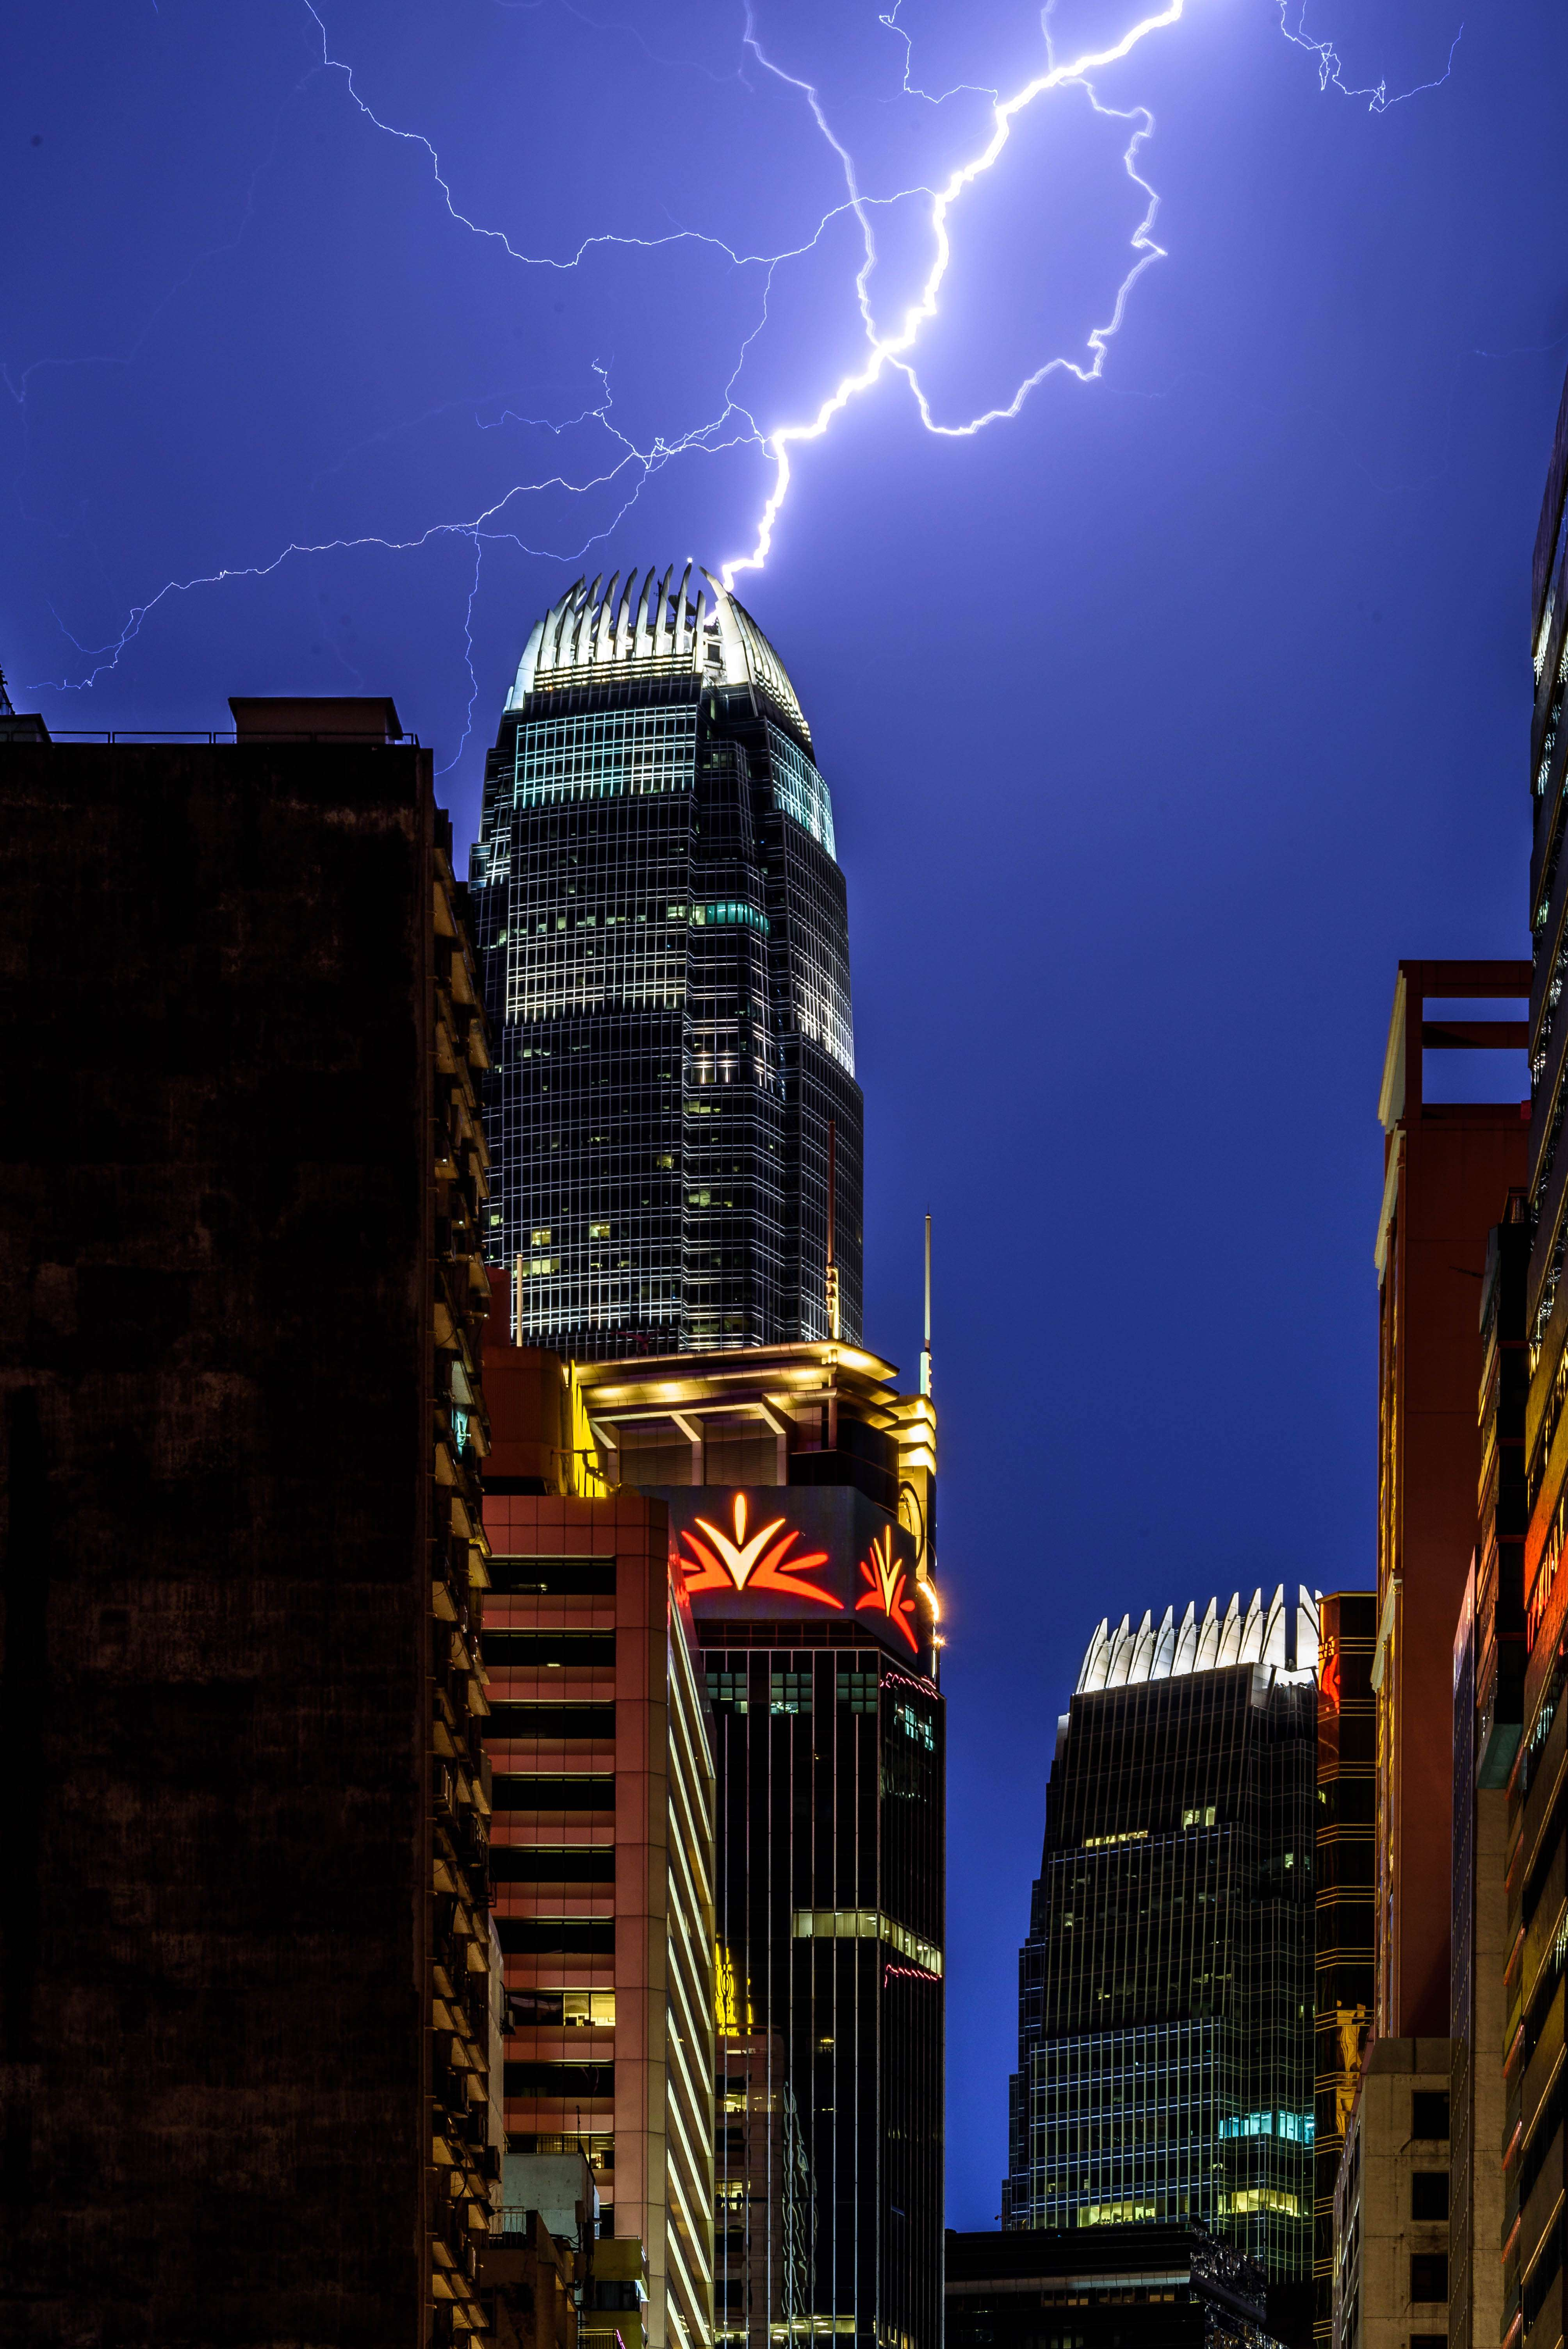 10000 Flashes Of Lightning Hong Kong Marvels At The Might Of An